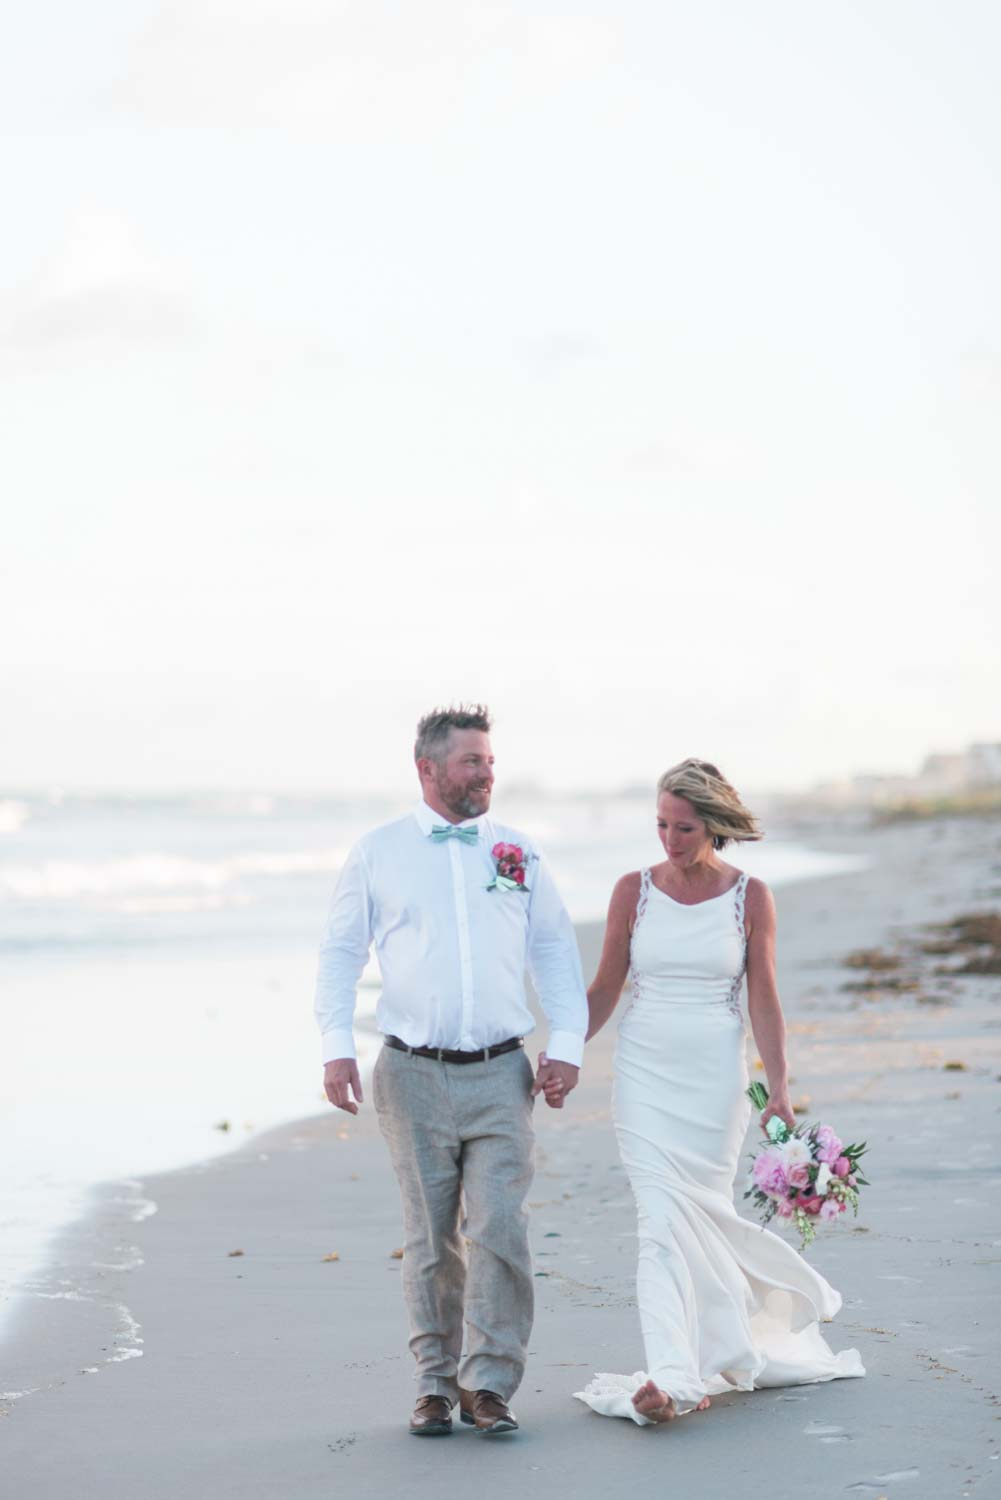 Cape Canaveral Beach Wedding Photographer - Rania Marie Photography-8.jpg